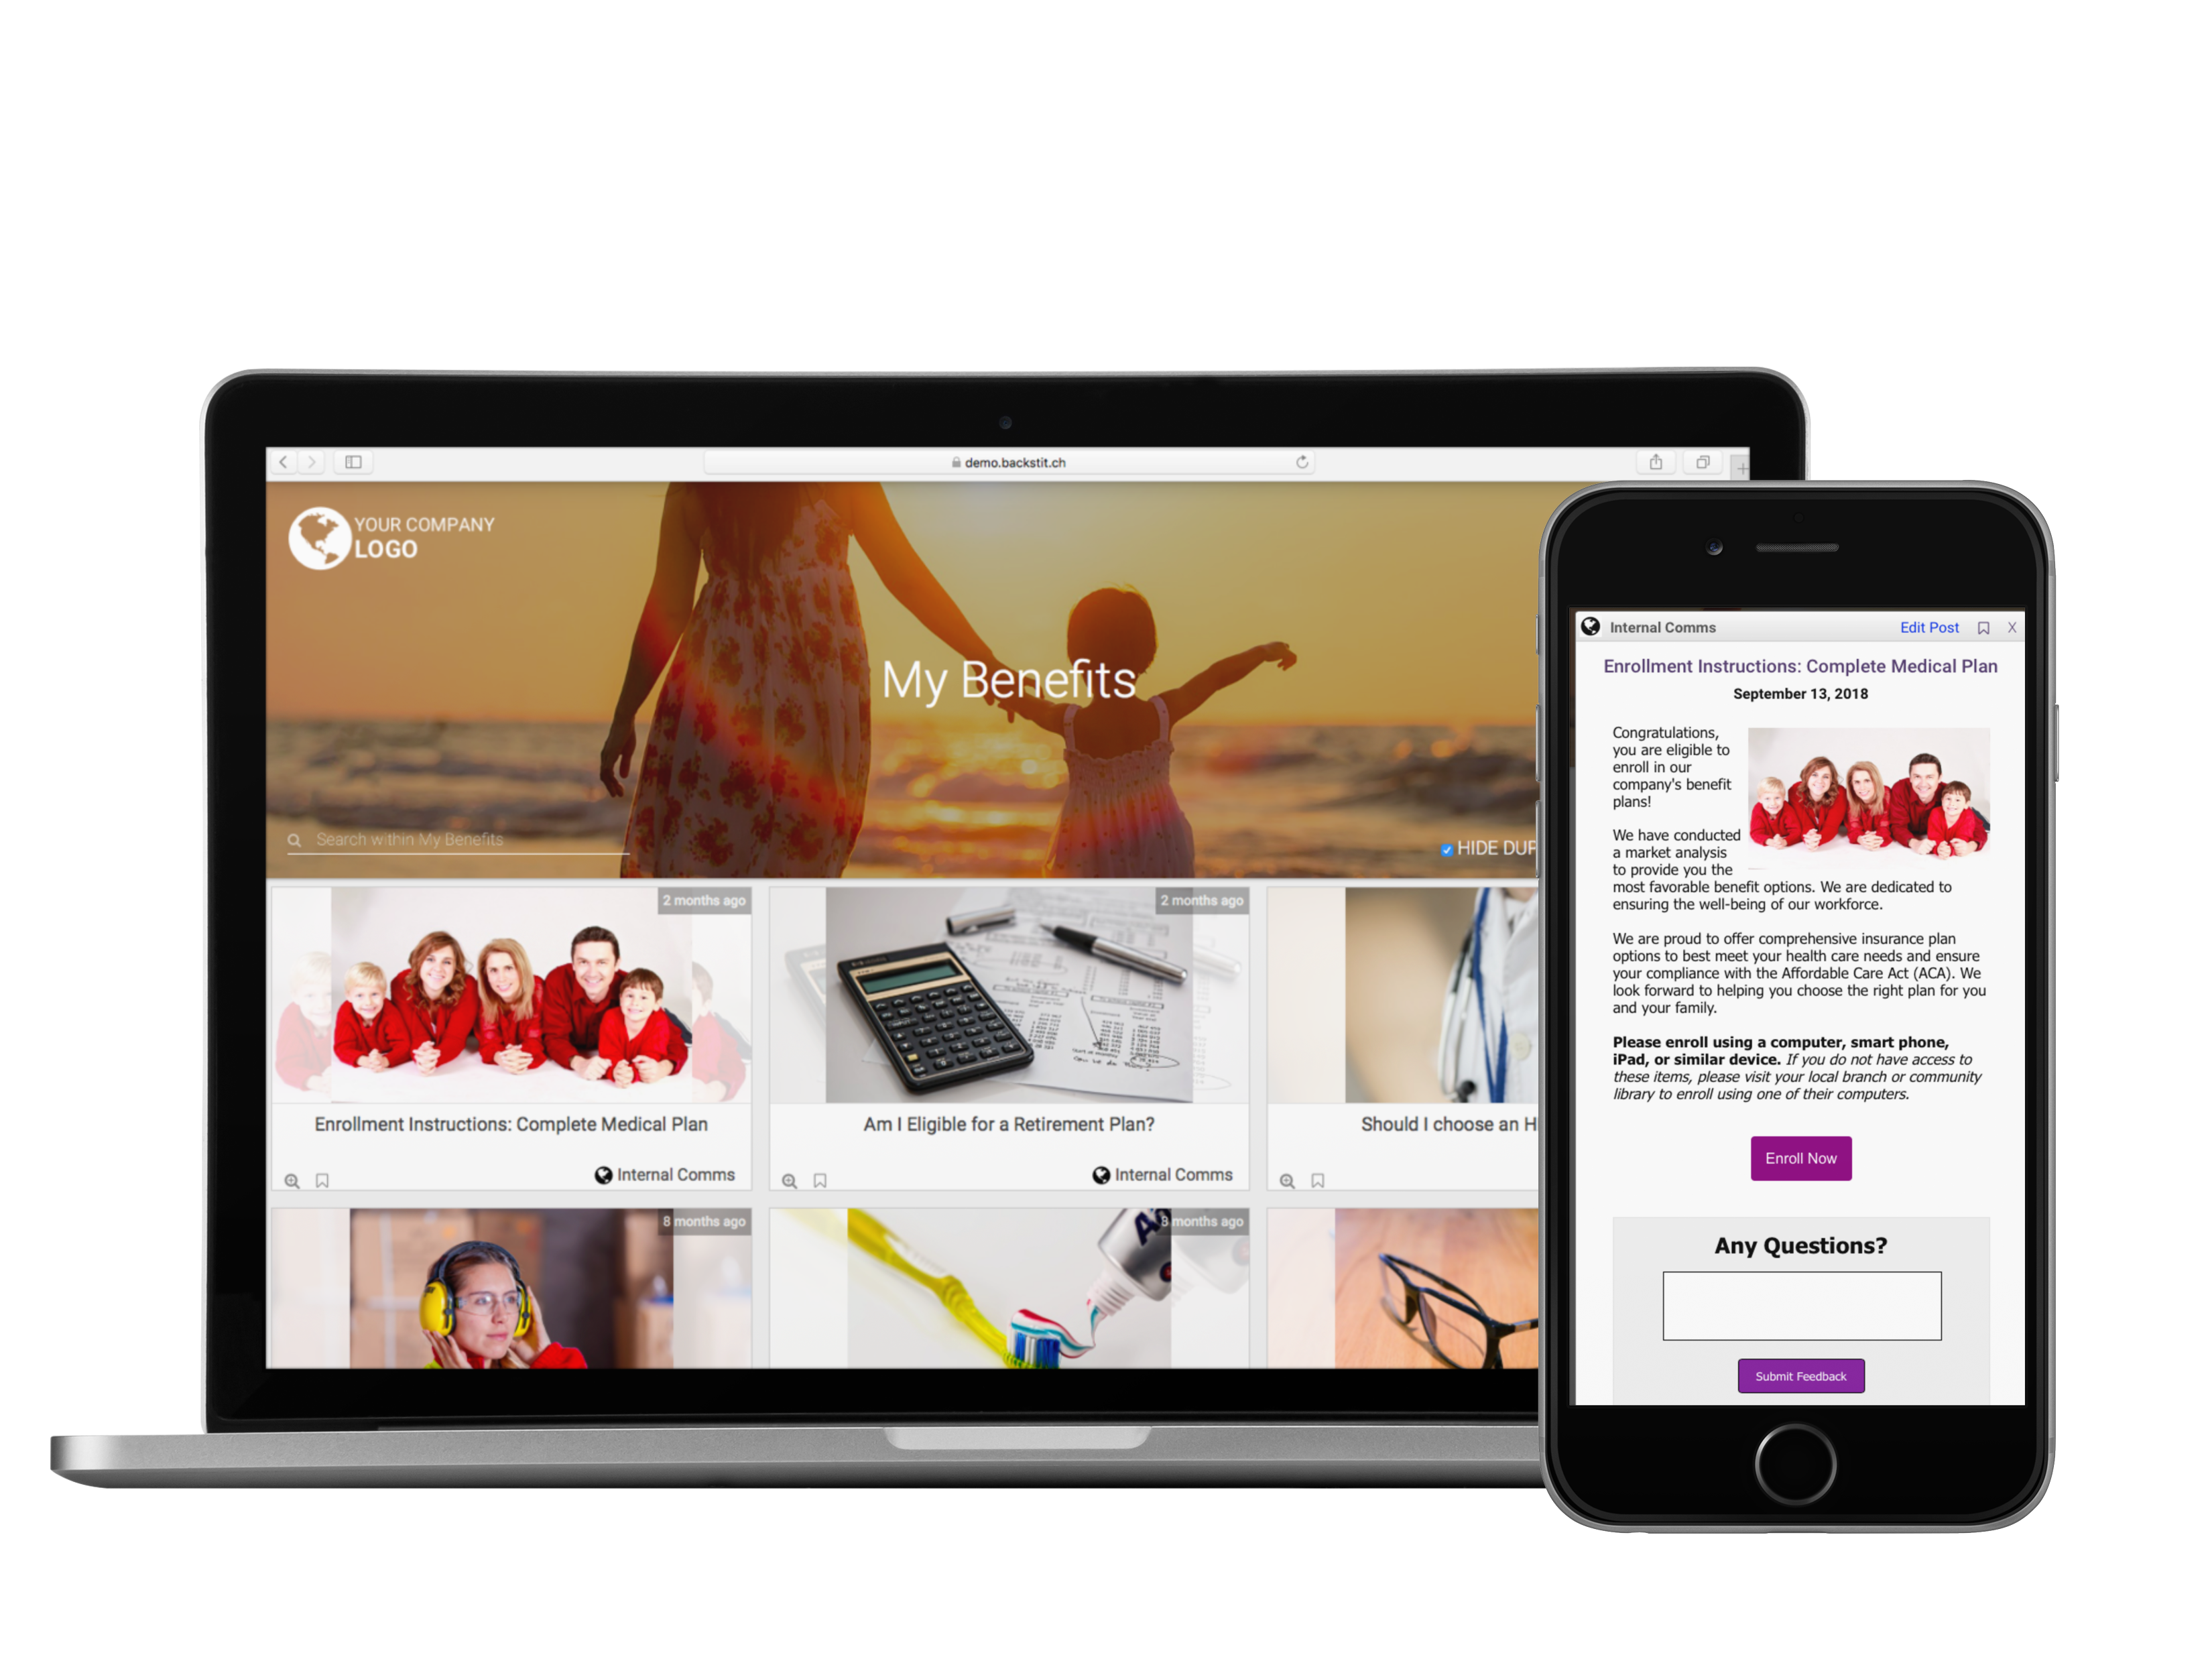 HR communications on your desktop and mobile app